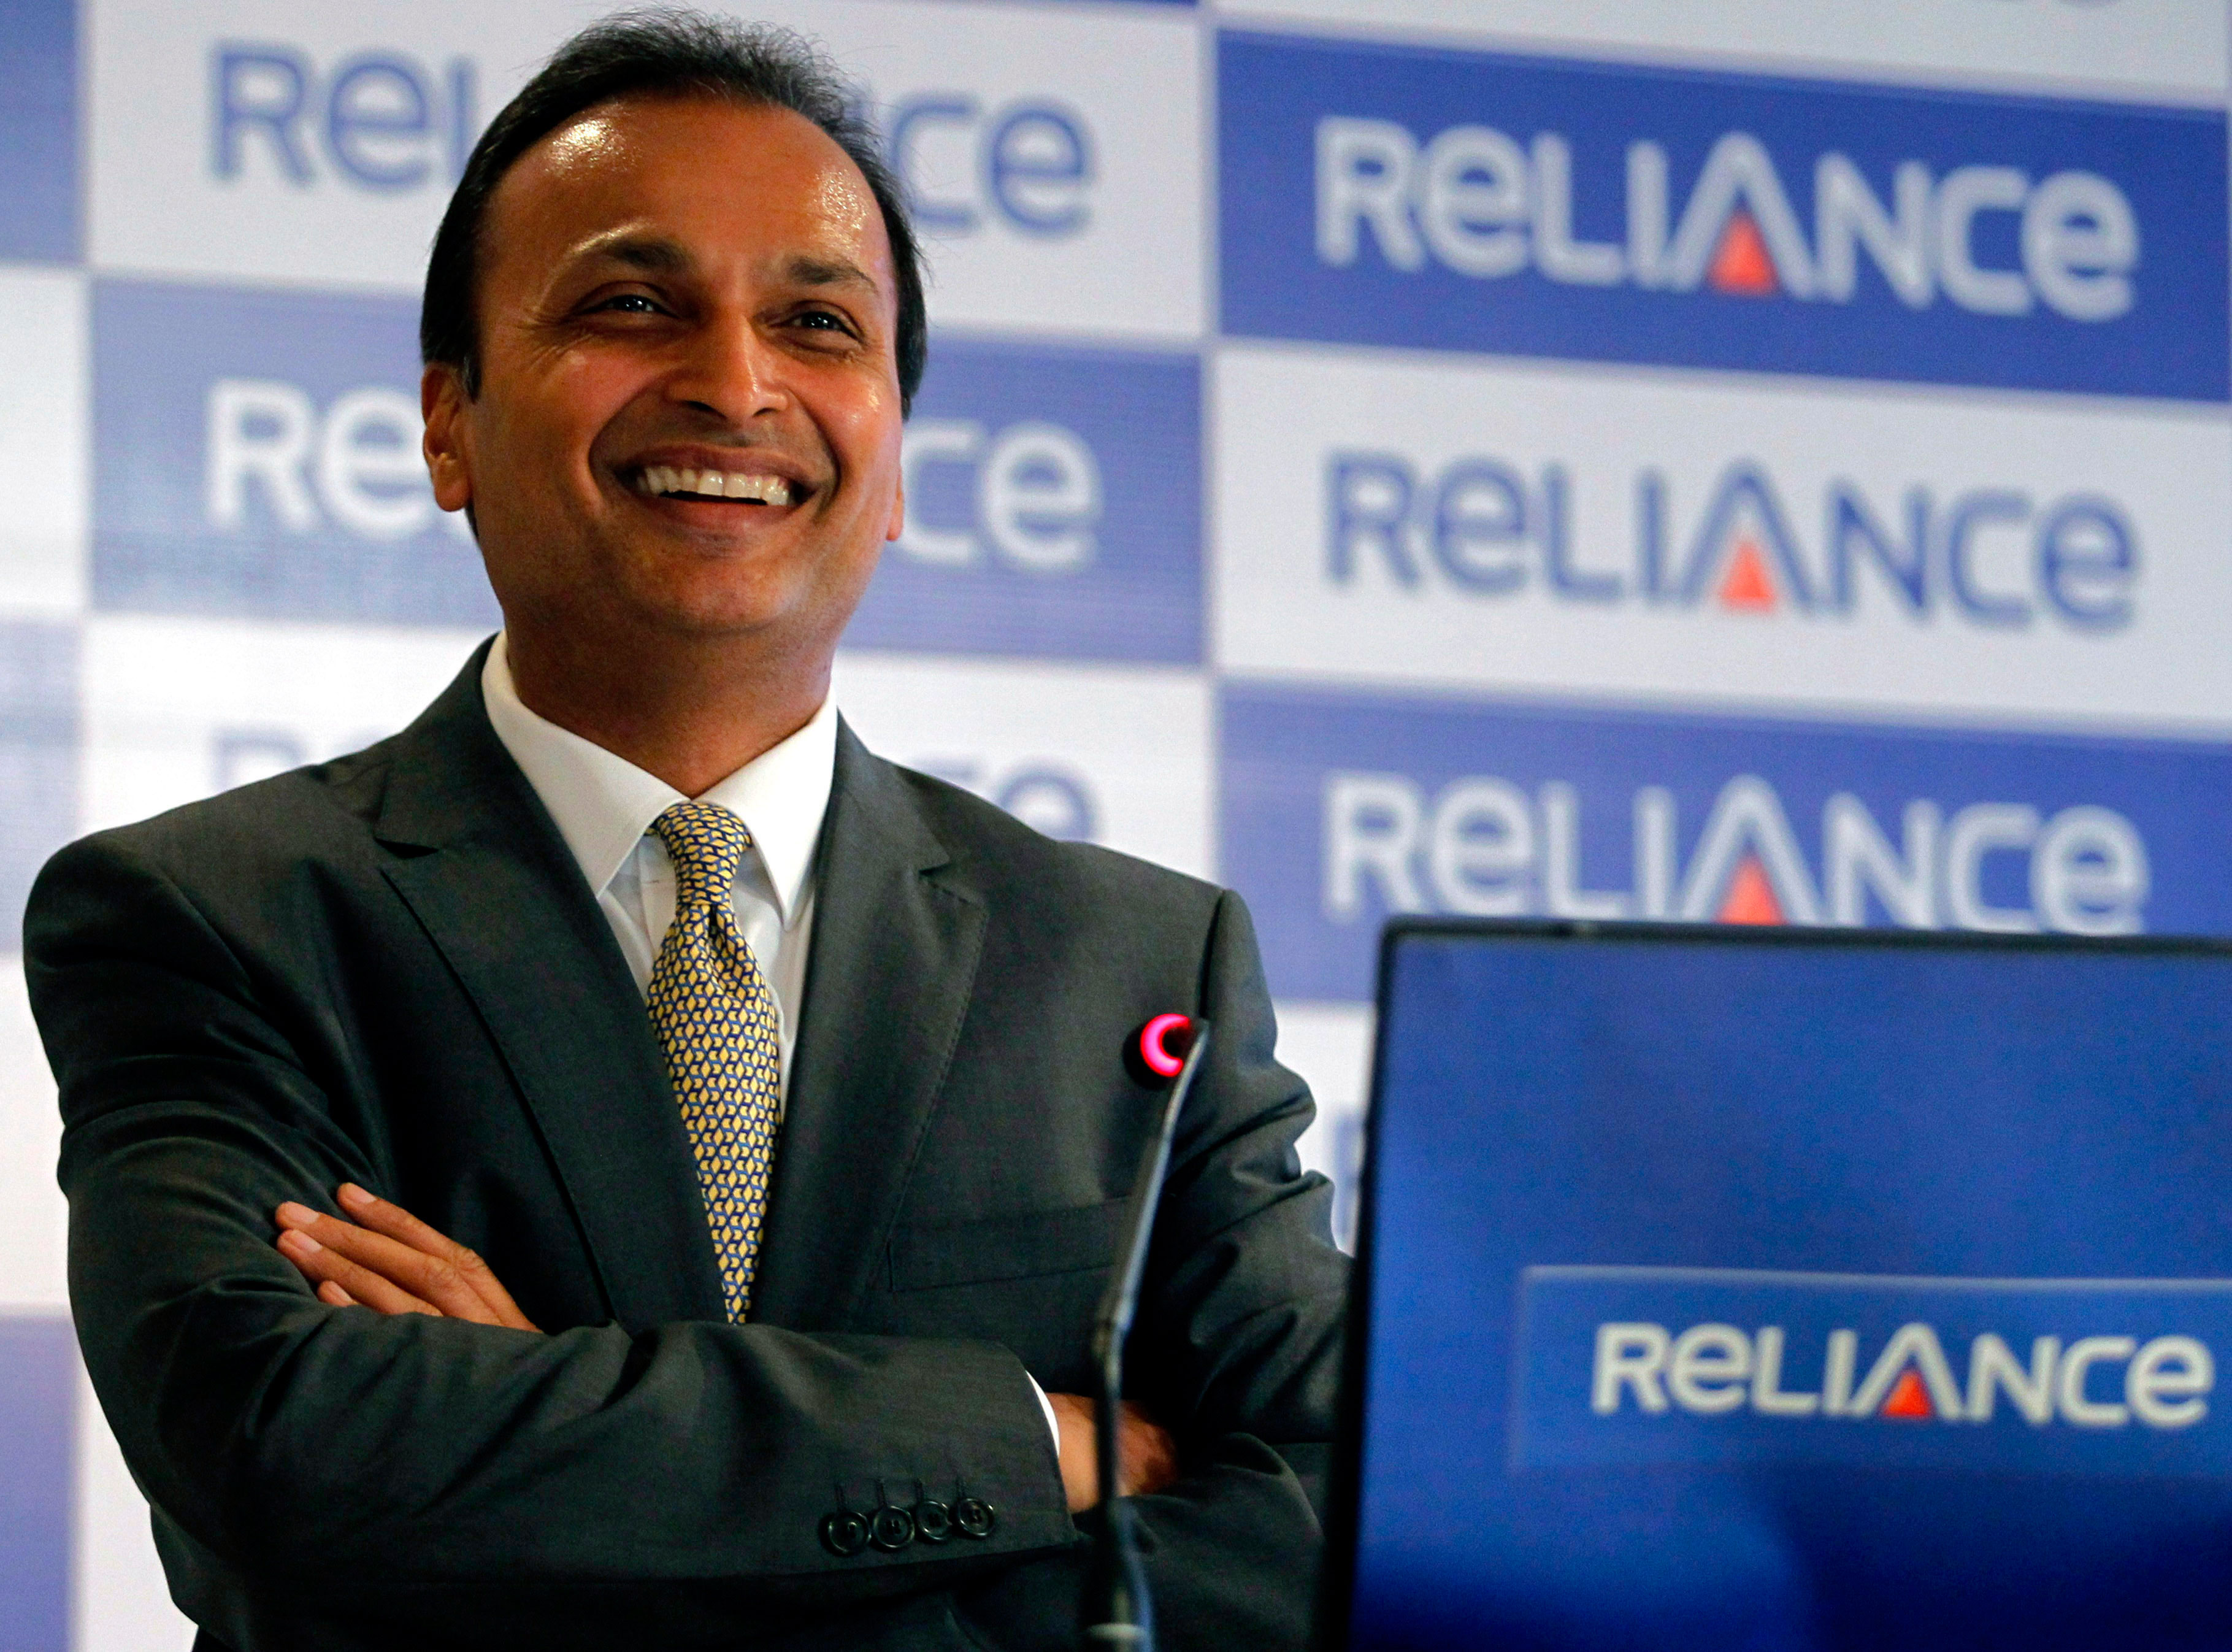 Reliance Infra to sell cement business to cut debt